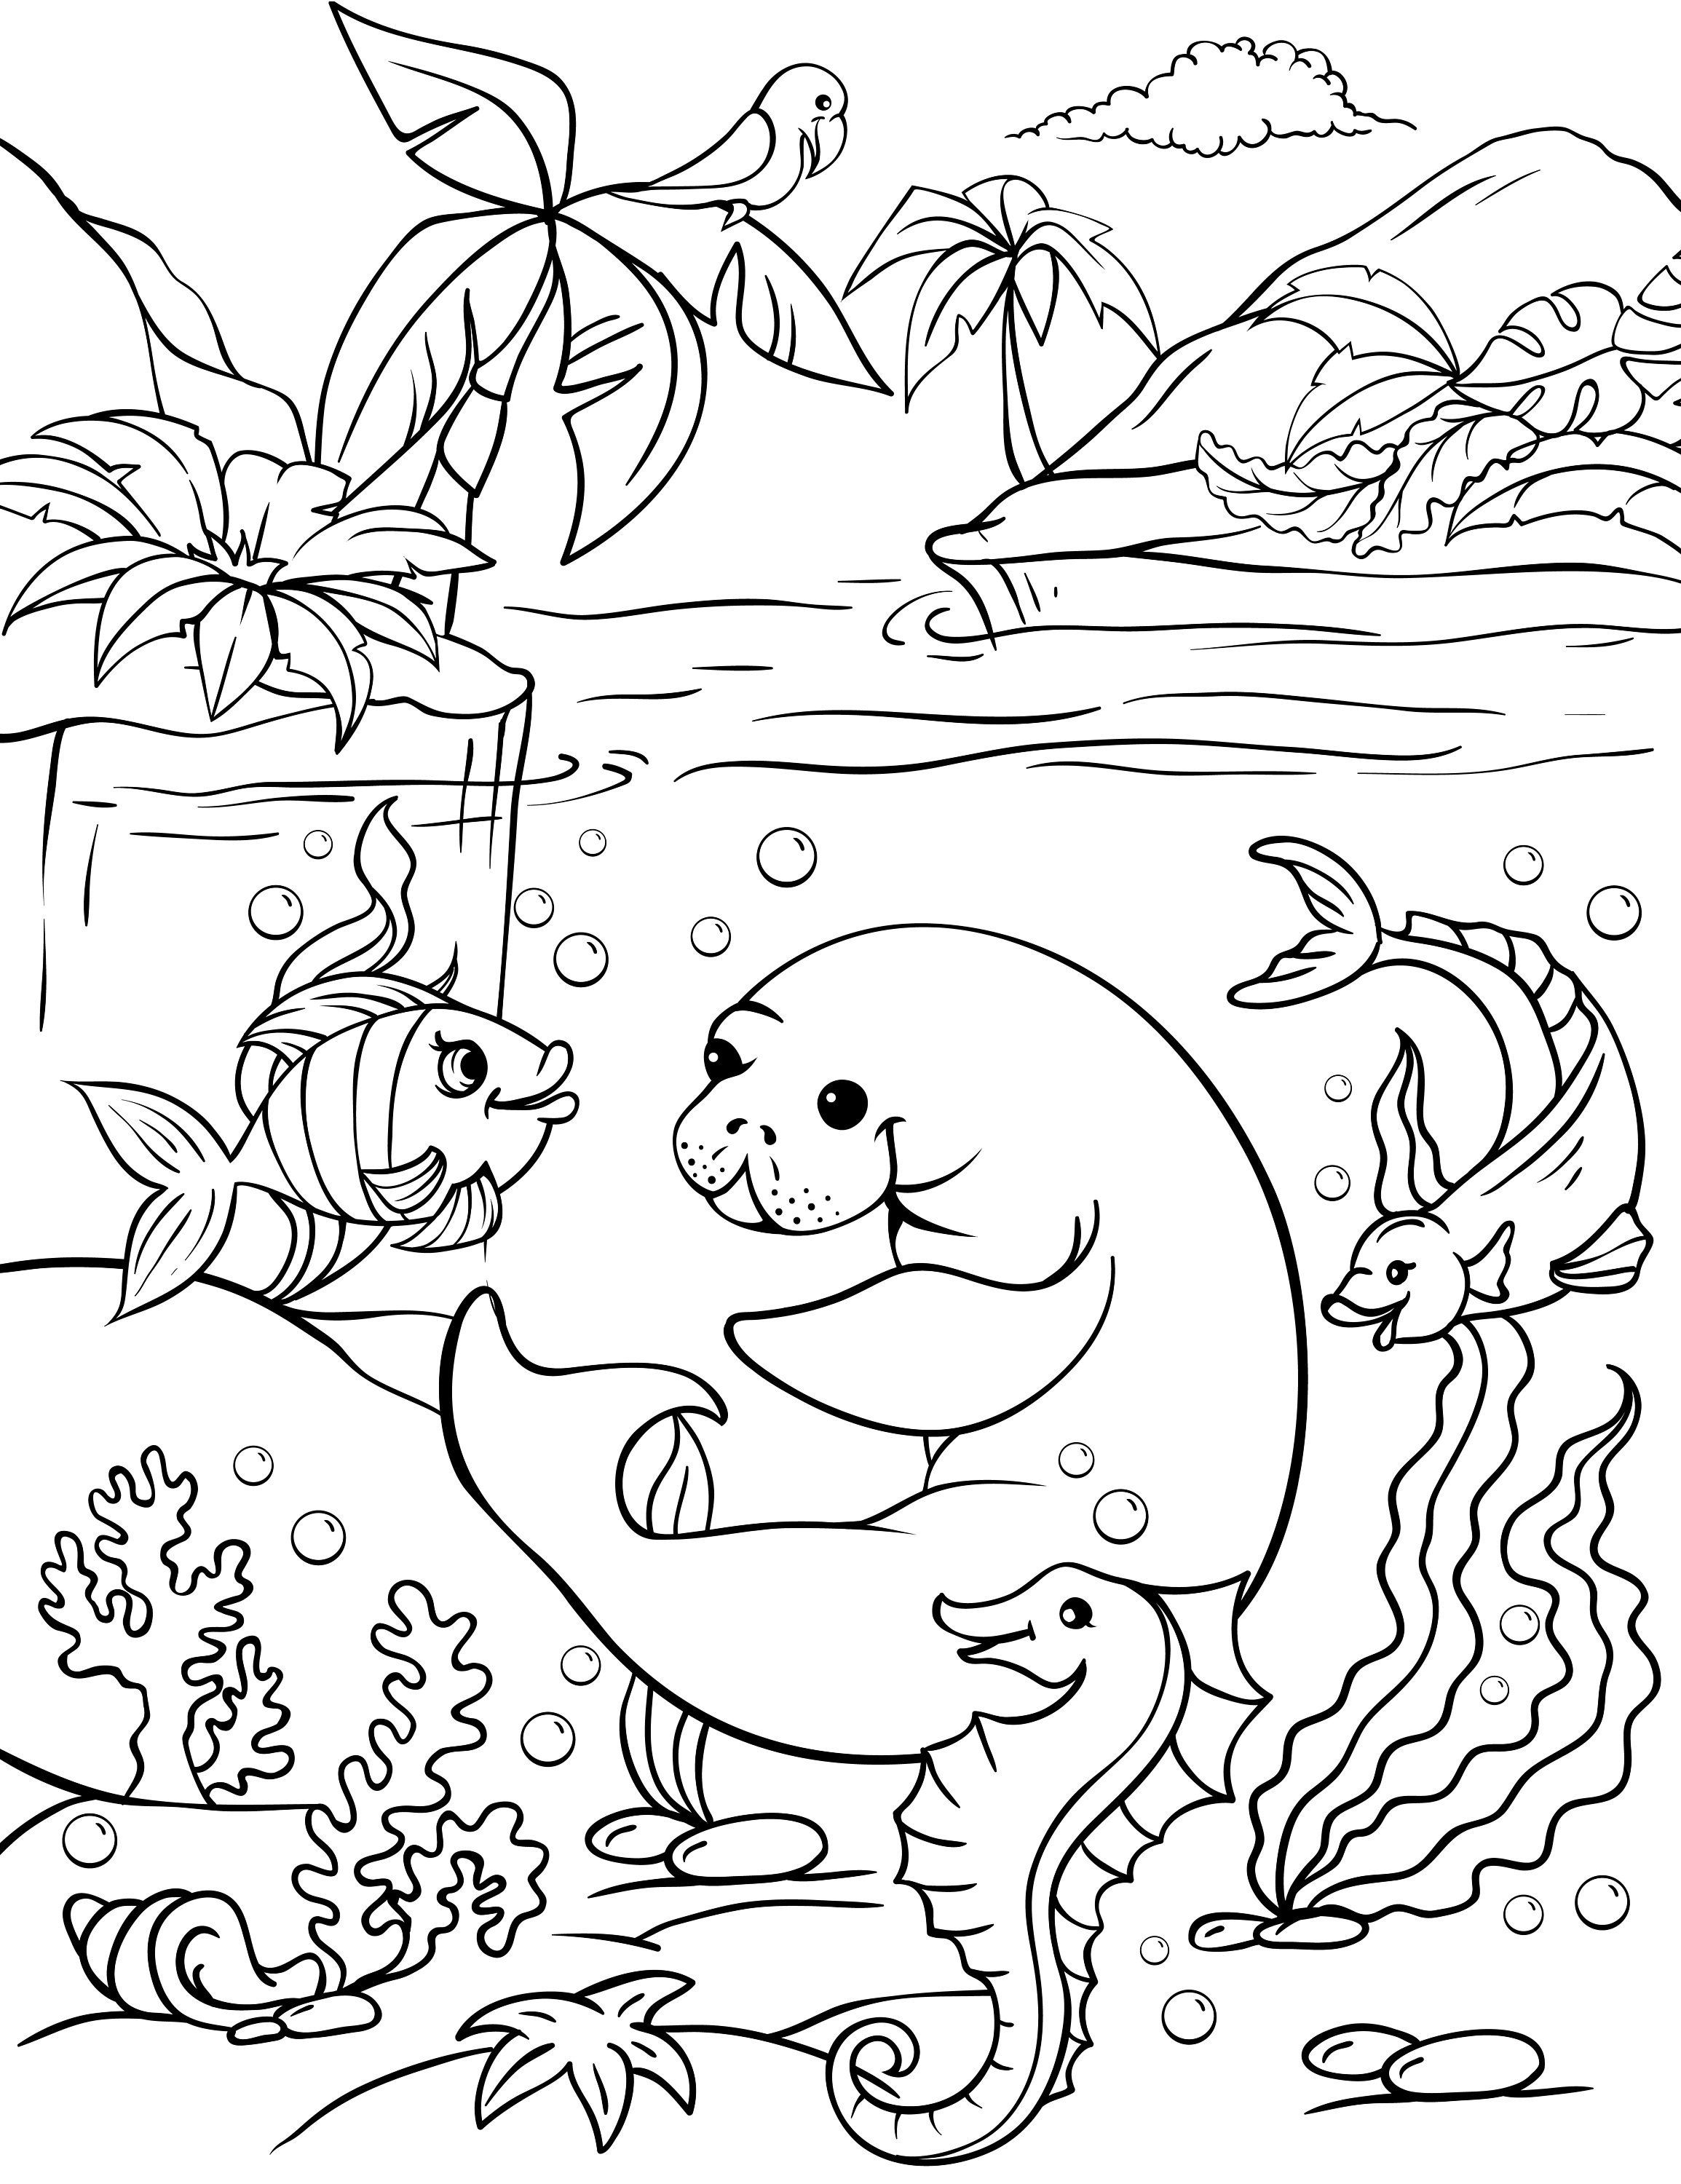 2 Pages Coloring With Sea Animals Digital Coloring For Kids Etsy In 2021 Free Kids Coloring Pages Free Coloring Pages Ocean Coloring Pages